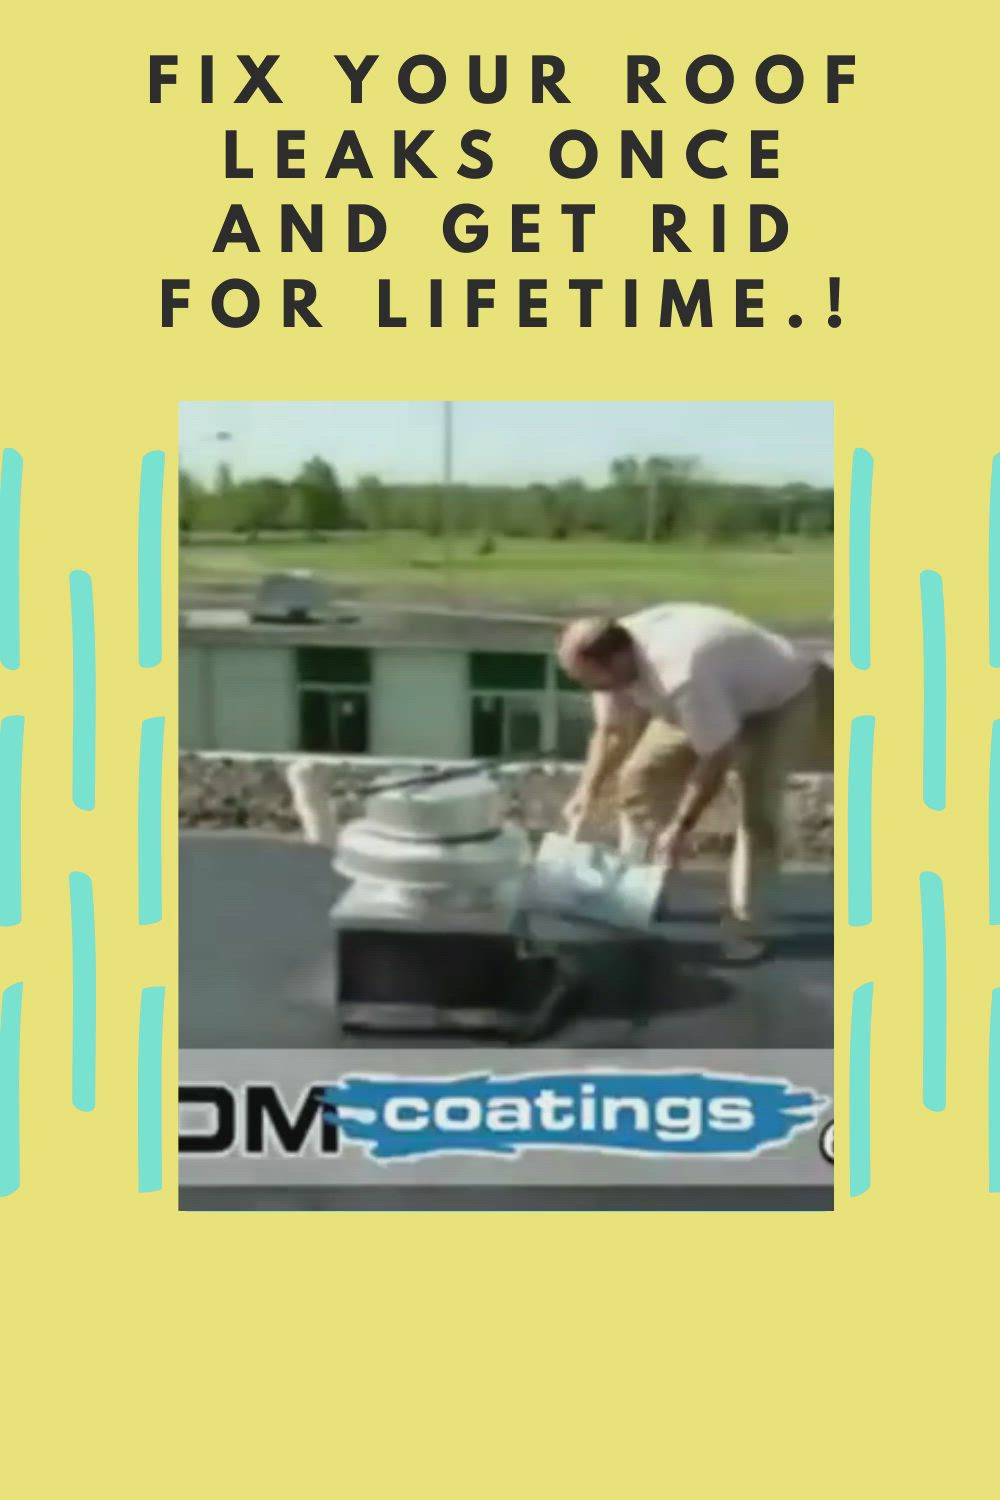 Fix Your Roof Leaks Once And Get Rid For Lifetime Video In 2020 Leaking Roof Roof Roof Leak Repair